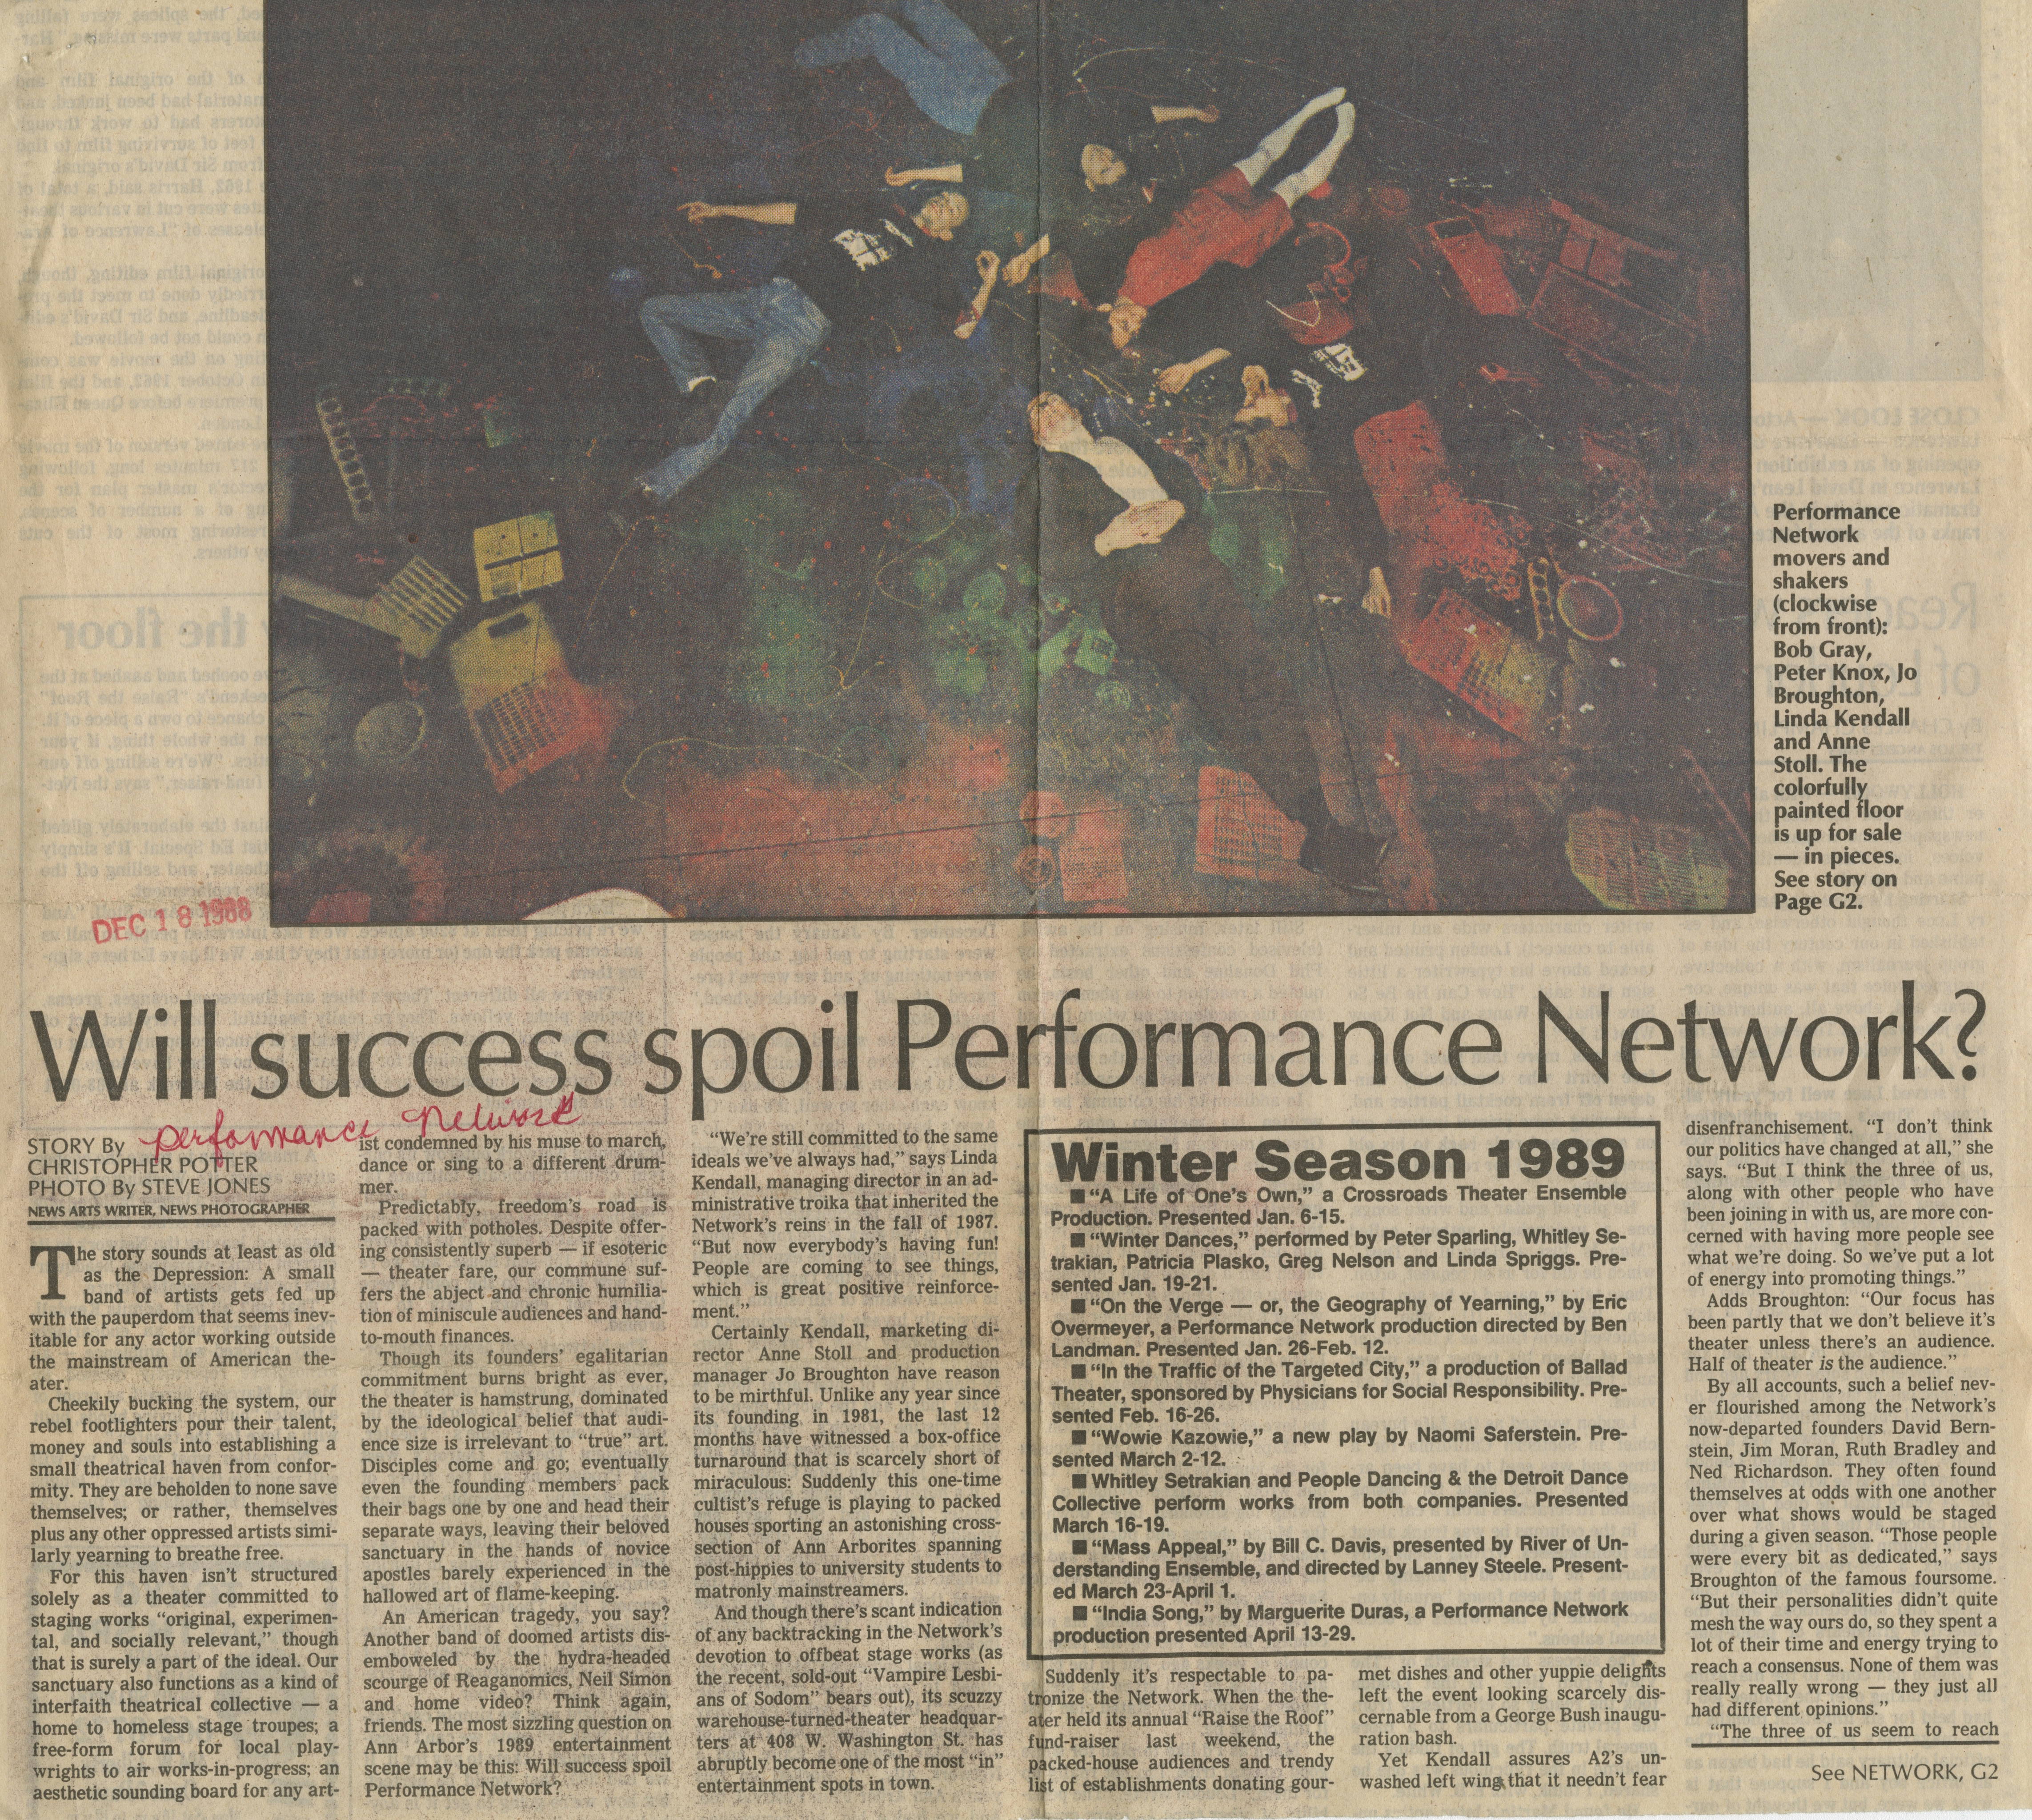 Will success spoil Performance Network? image